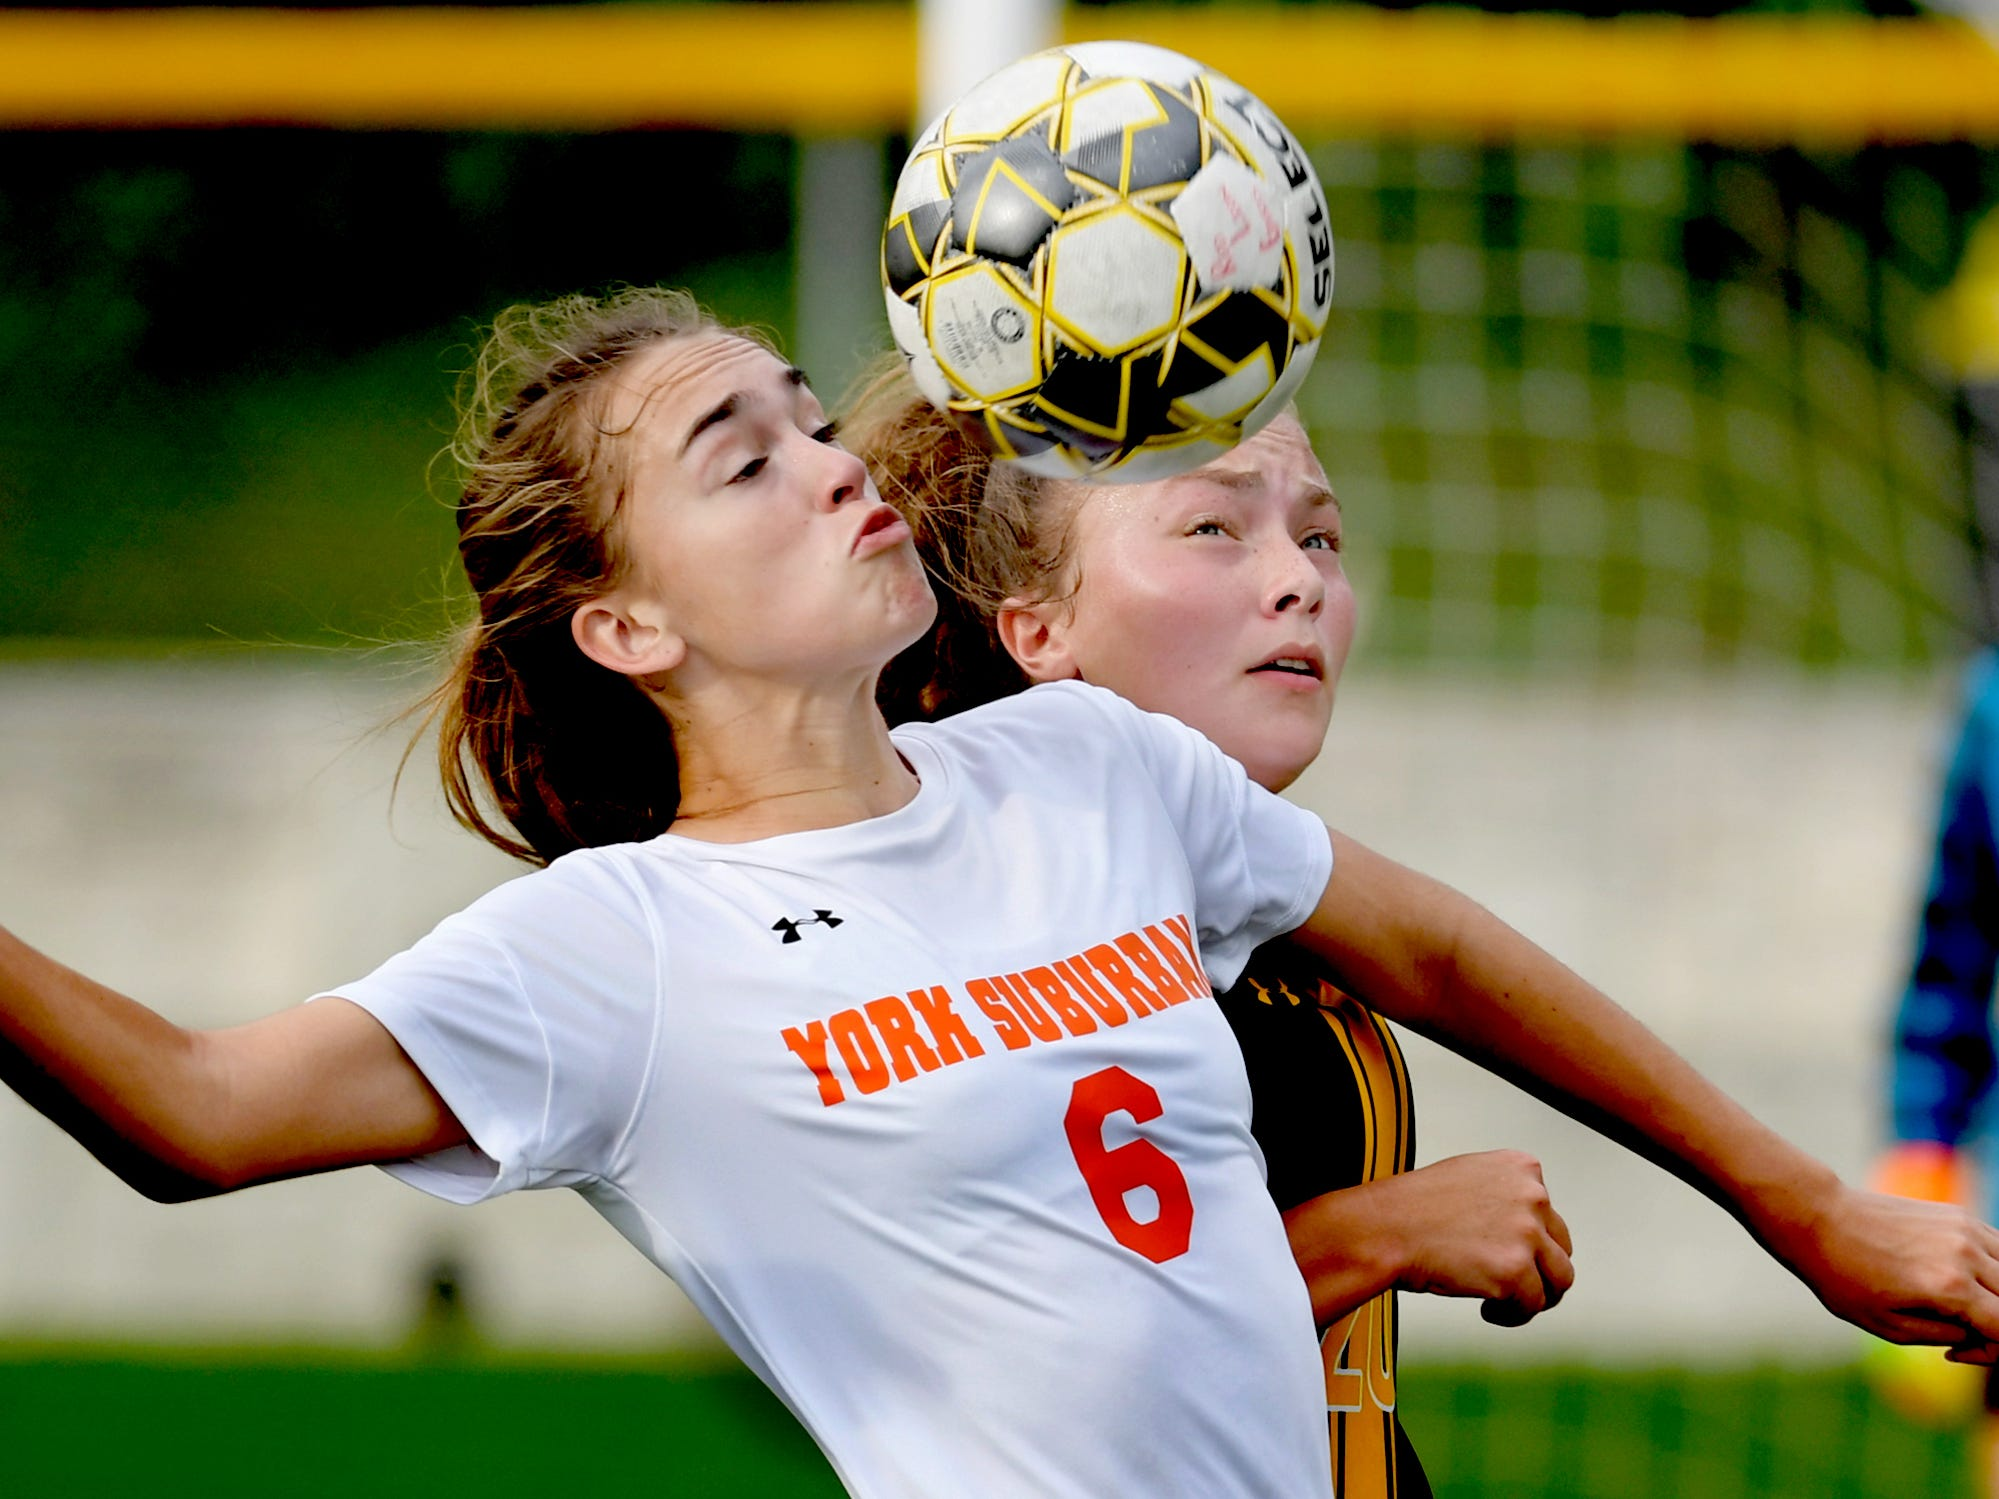 York Suburban's Hannah Drahusz and Red Lion's Shaye Robertson vie for possession during soccer action at Red Lion Tuesday, Oct. 2, 2018. Red Lion won 5-0. Bill Kalina photo